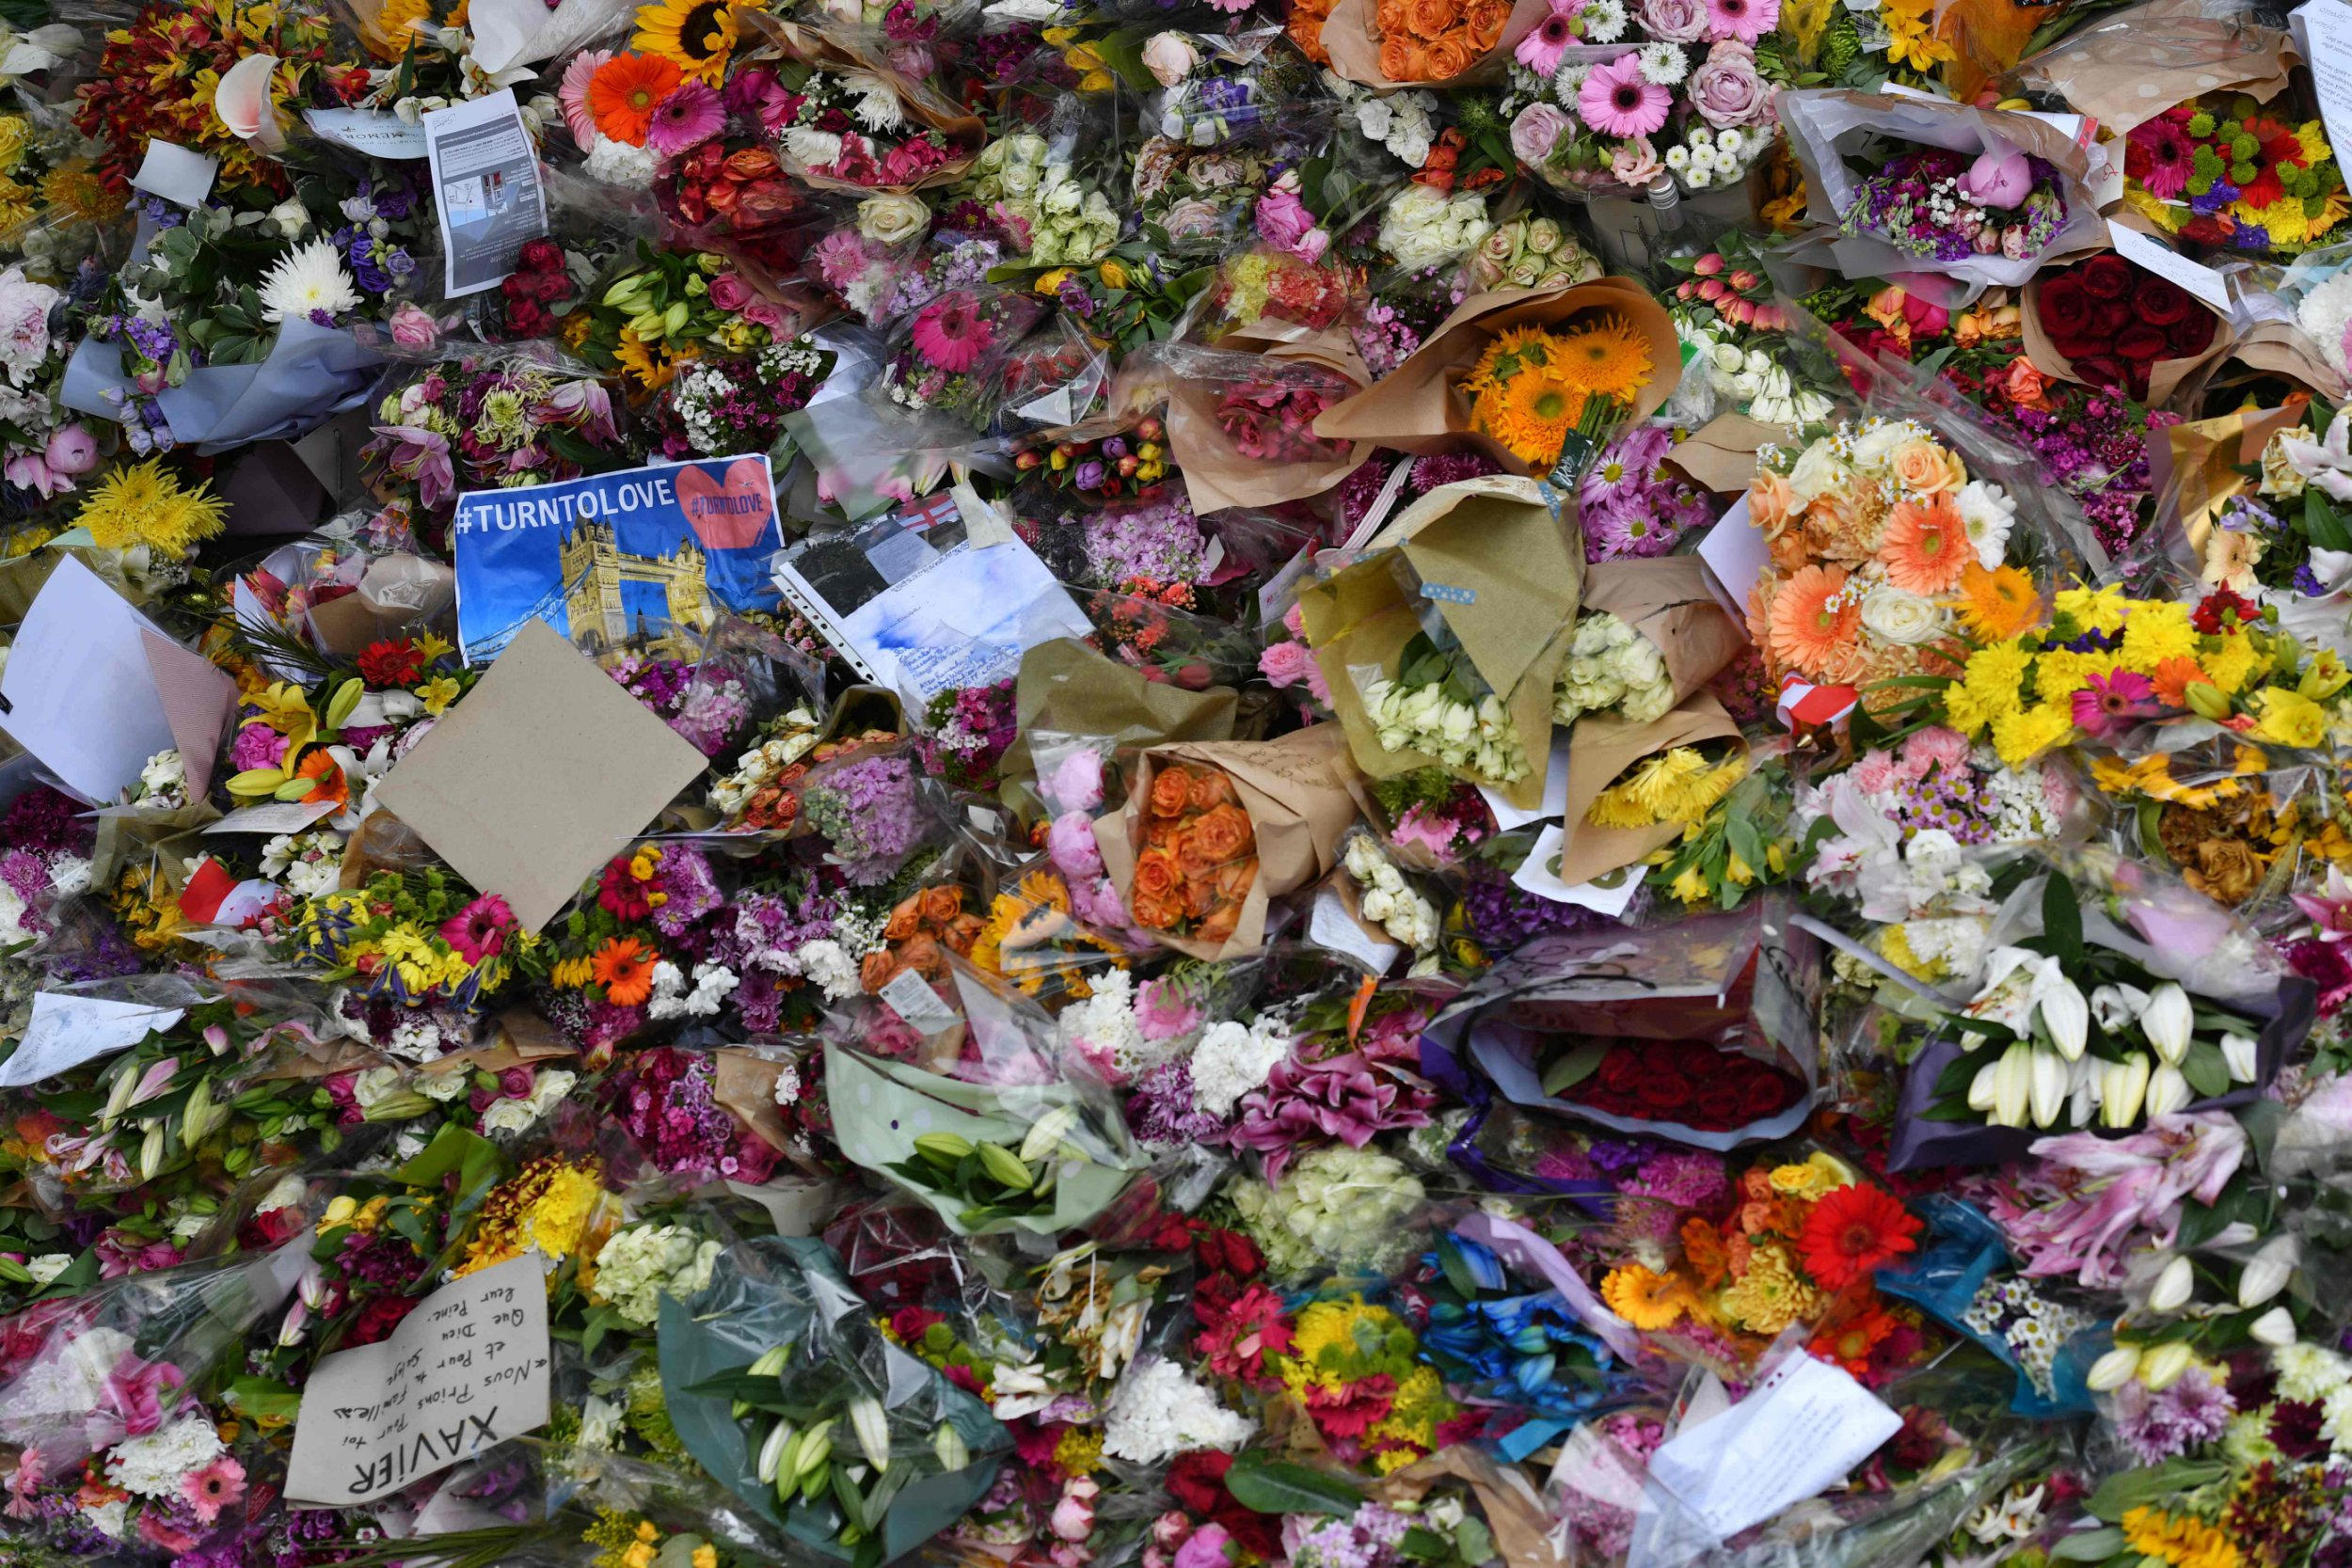 Memorial to be projected on London Bridge to mark one year since terror attack